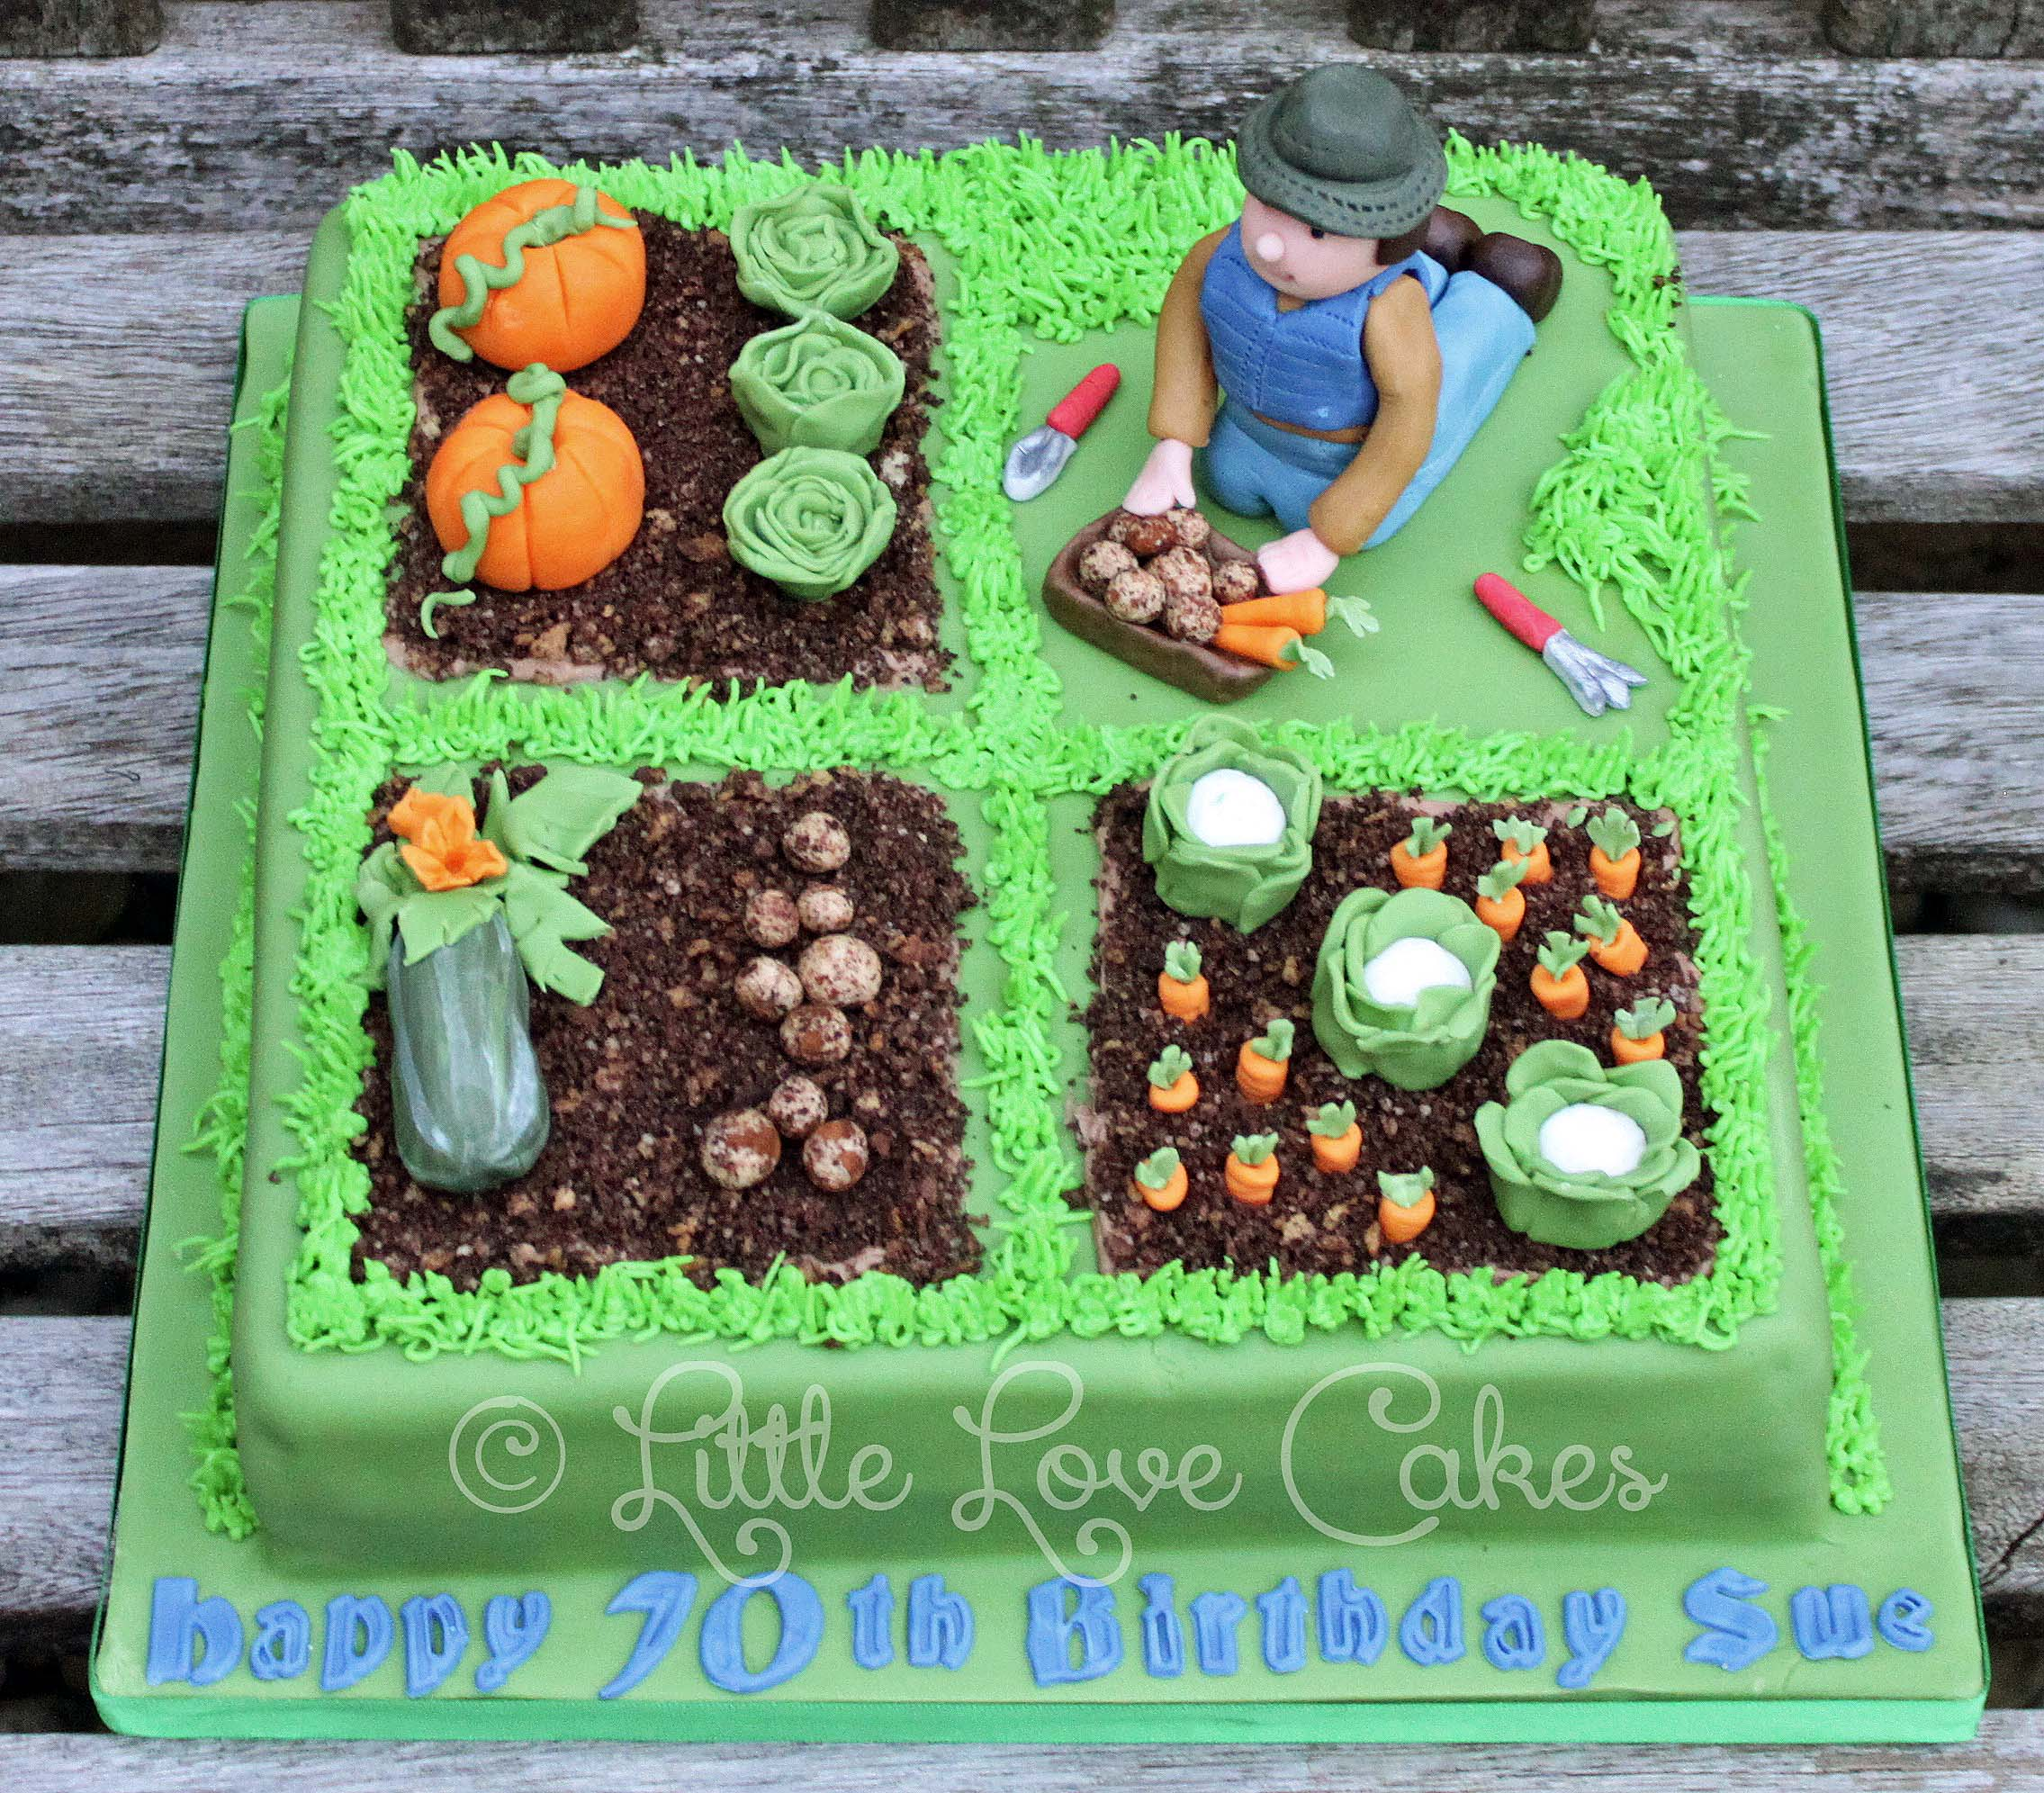 Allotment garden cake